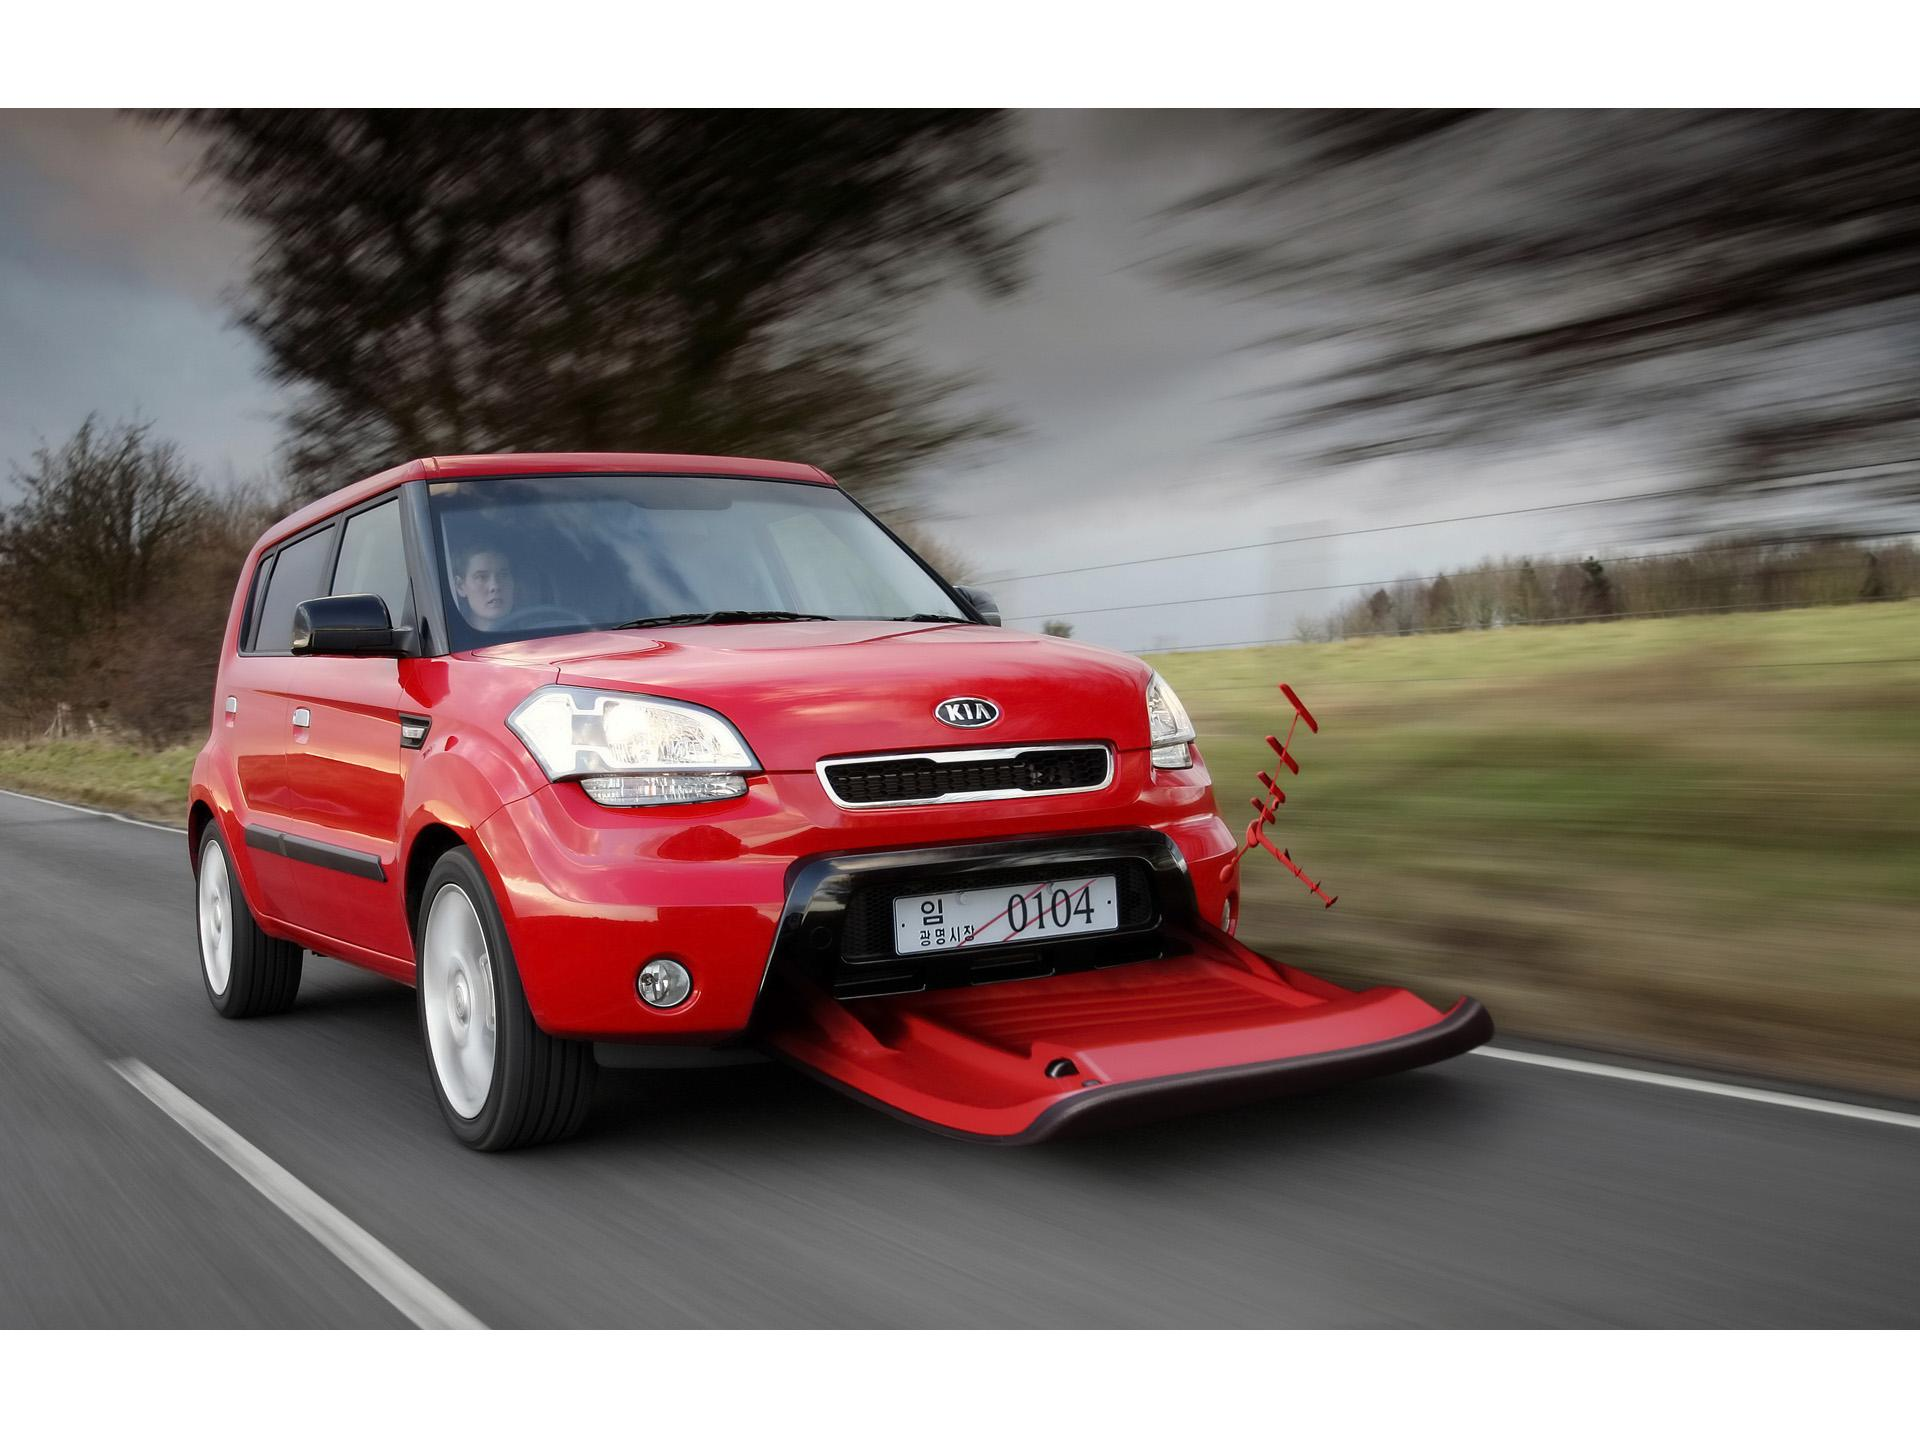 Dodge Aero >> 2010 Kia Soul APRIL System News and Information - conceptcarz.com